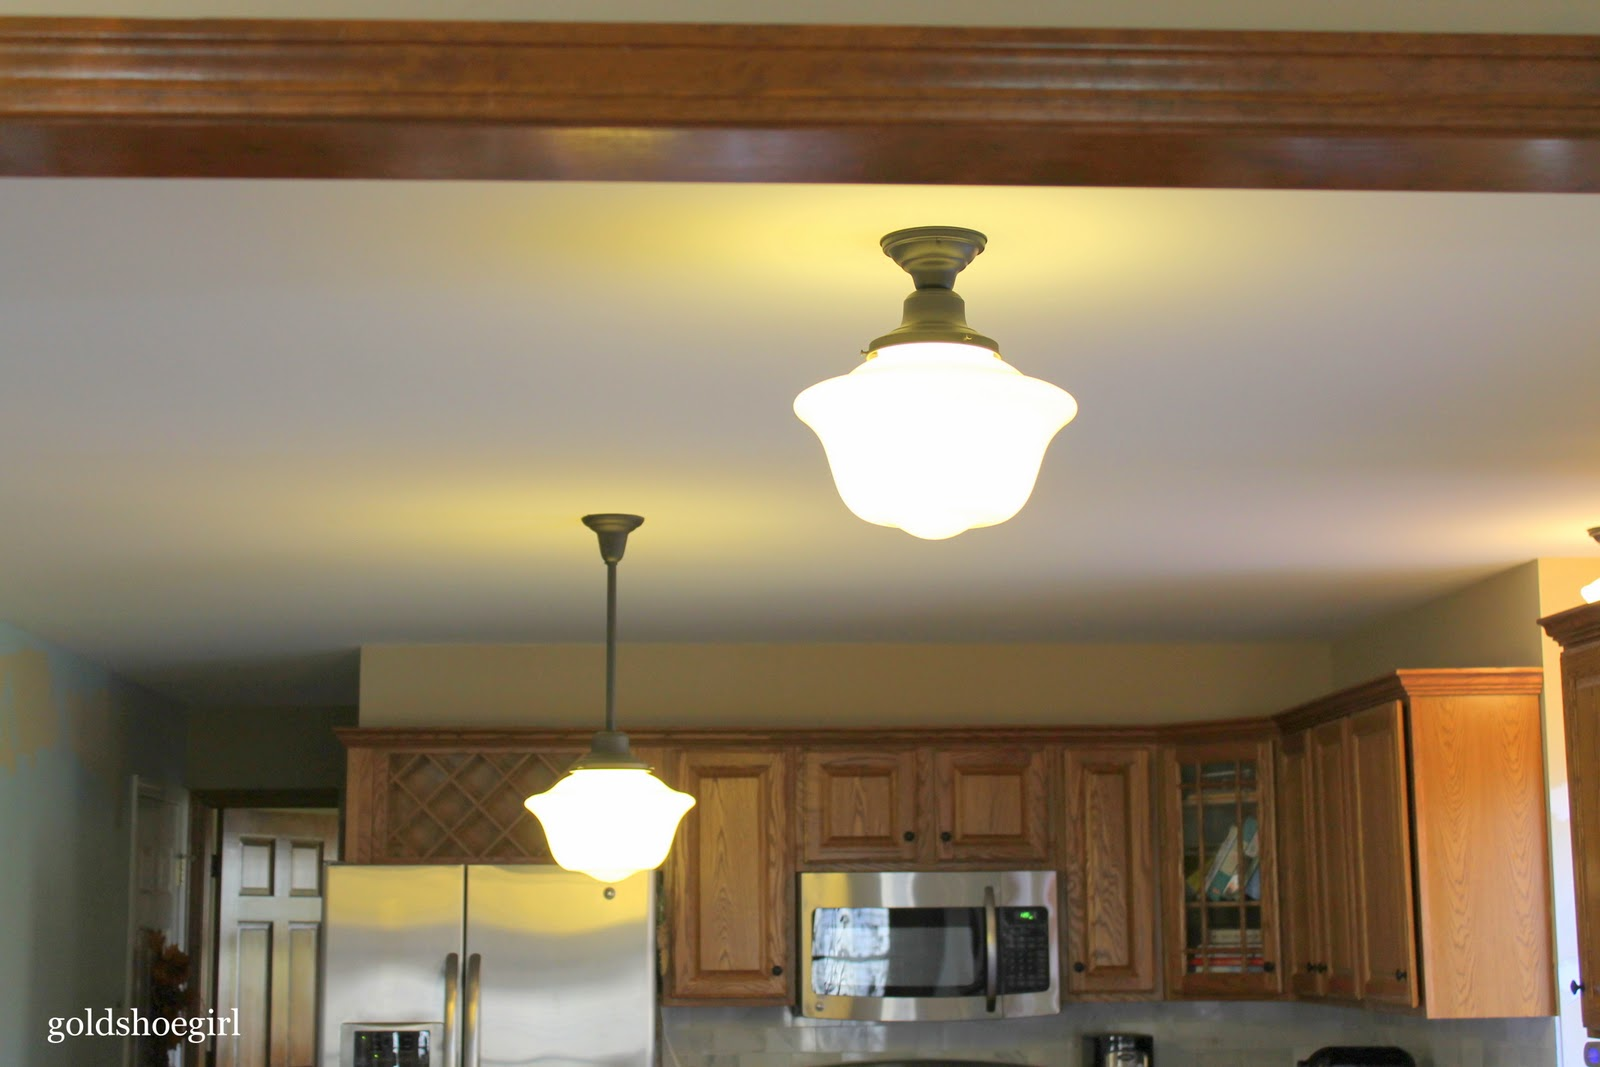 11 kitchen lights over table Tuesday November 22